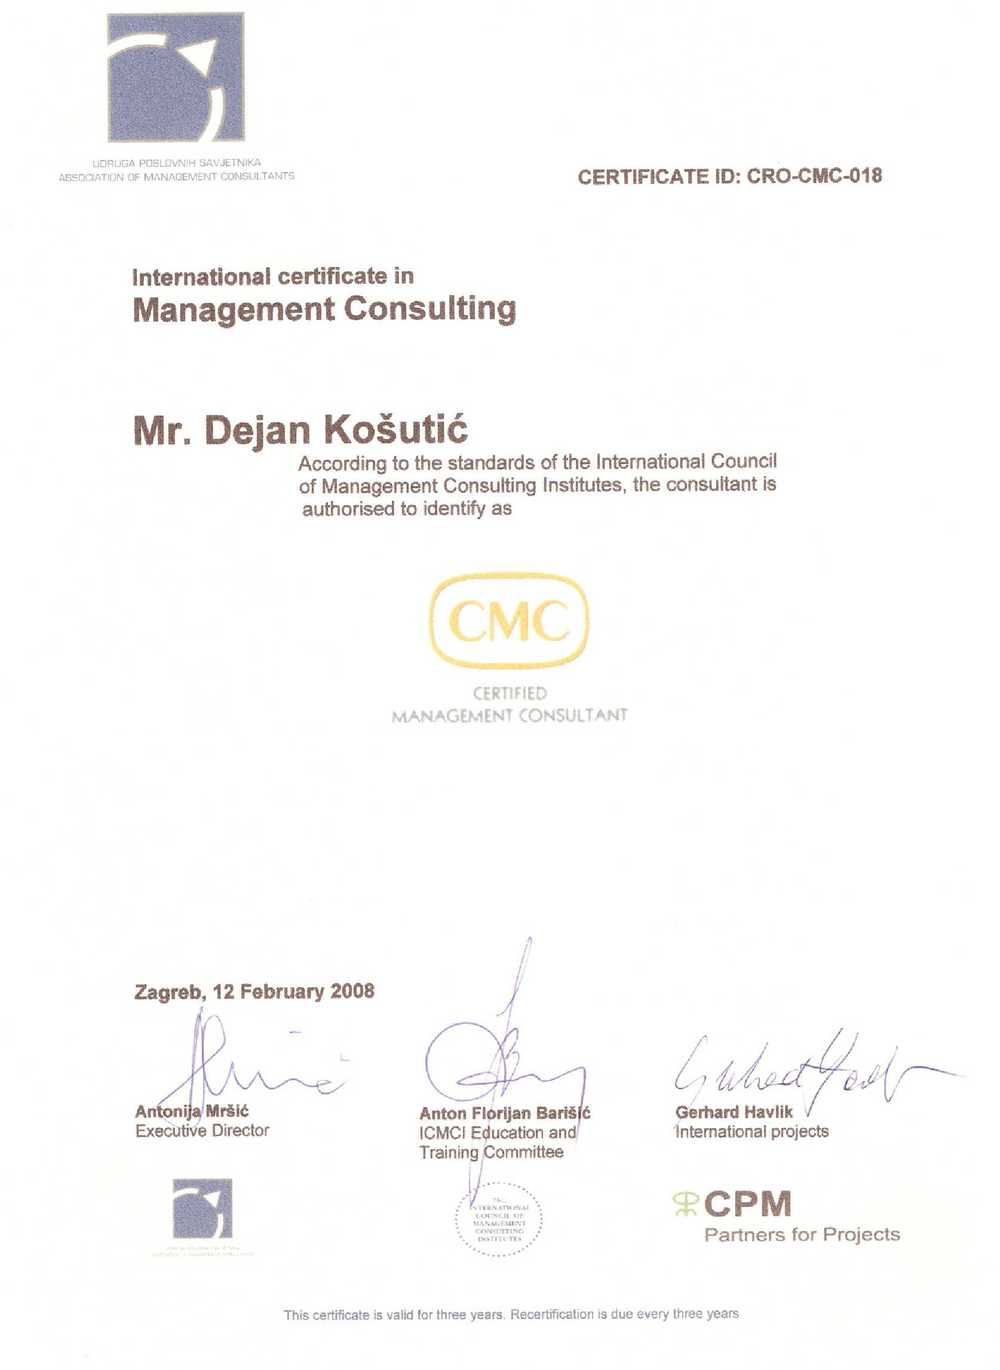 Certified Management Consultant (UPS).jpg